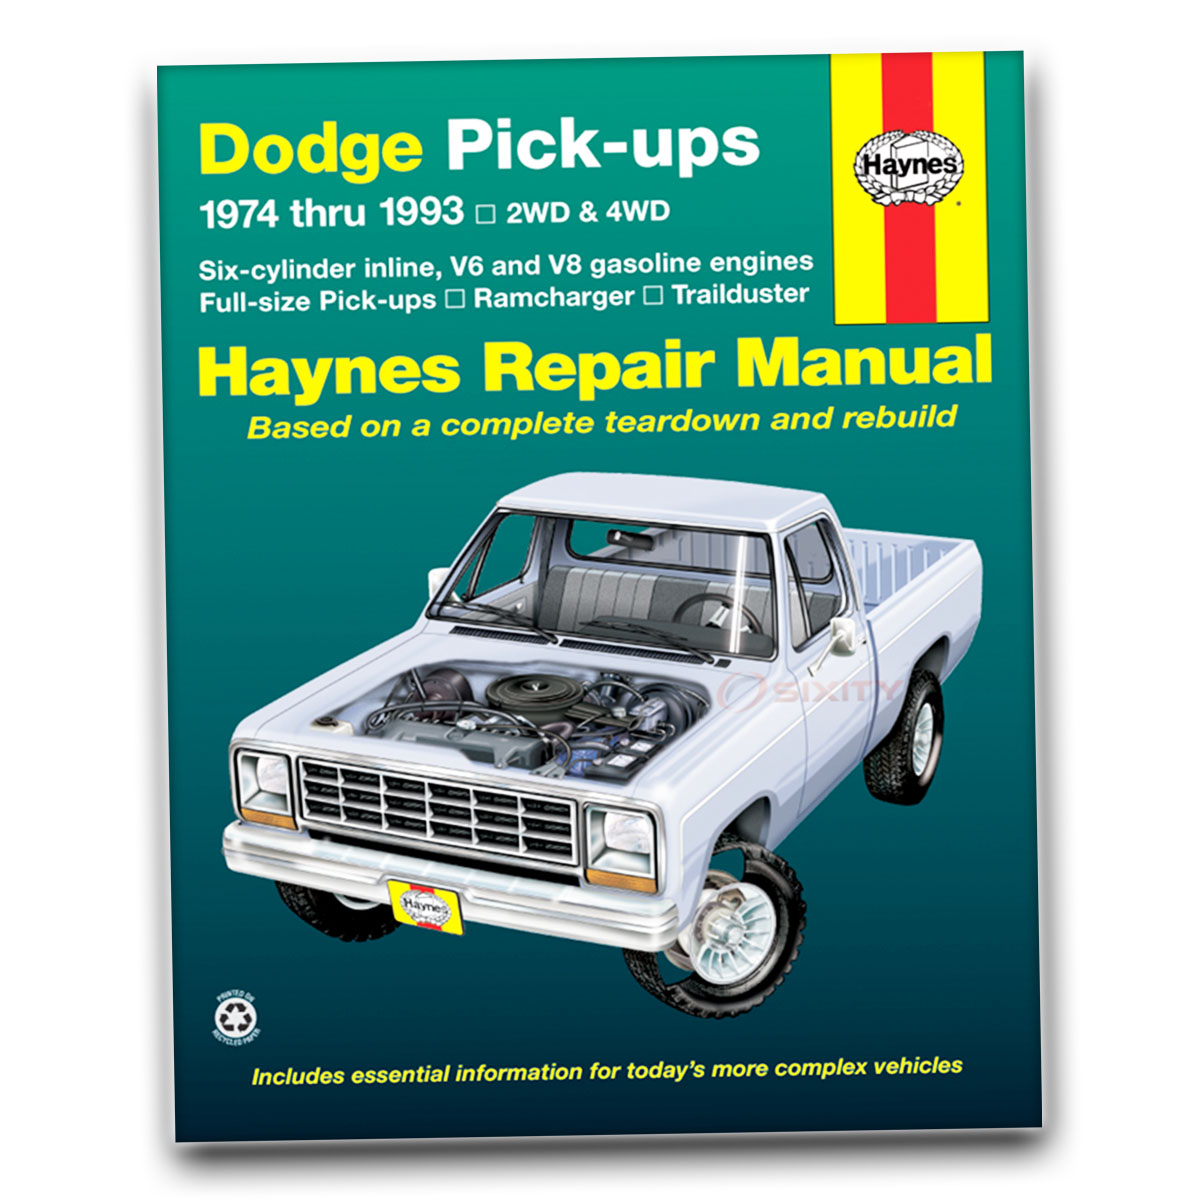 haynes repair manual for dodge d100 custom shop service garage book rh ebay  com Dodge D150 Dodge D200